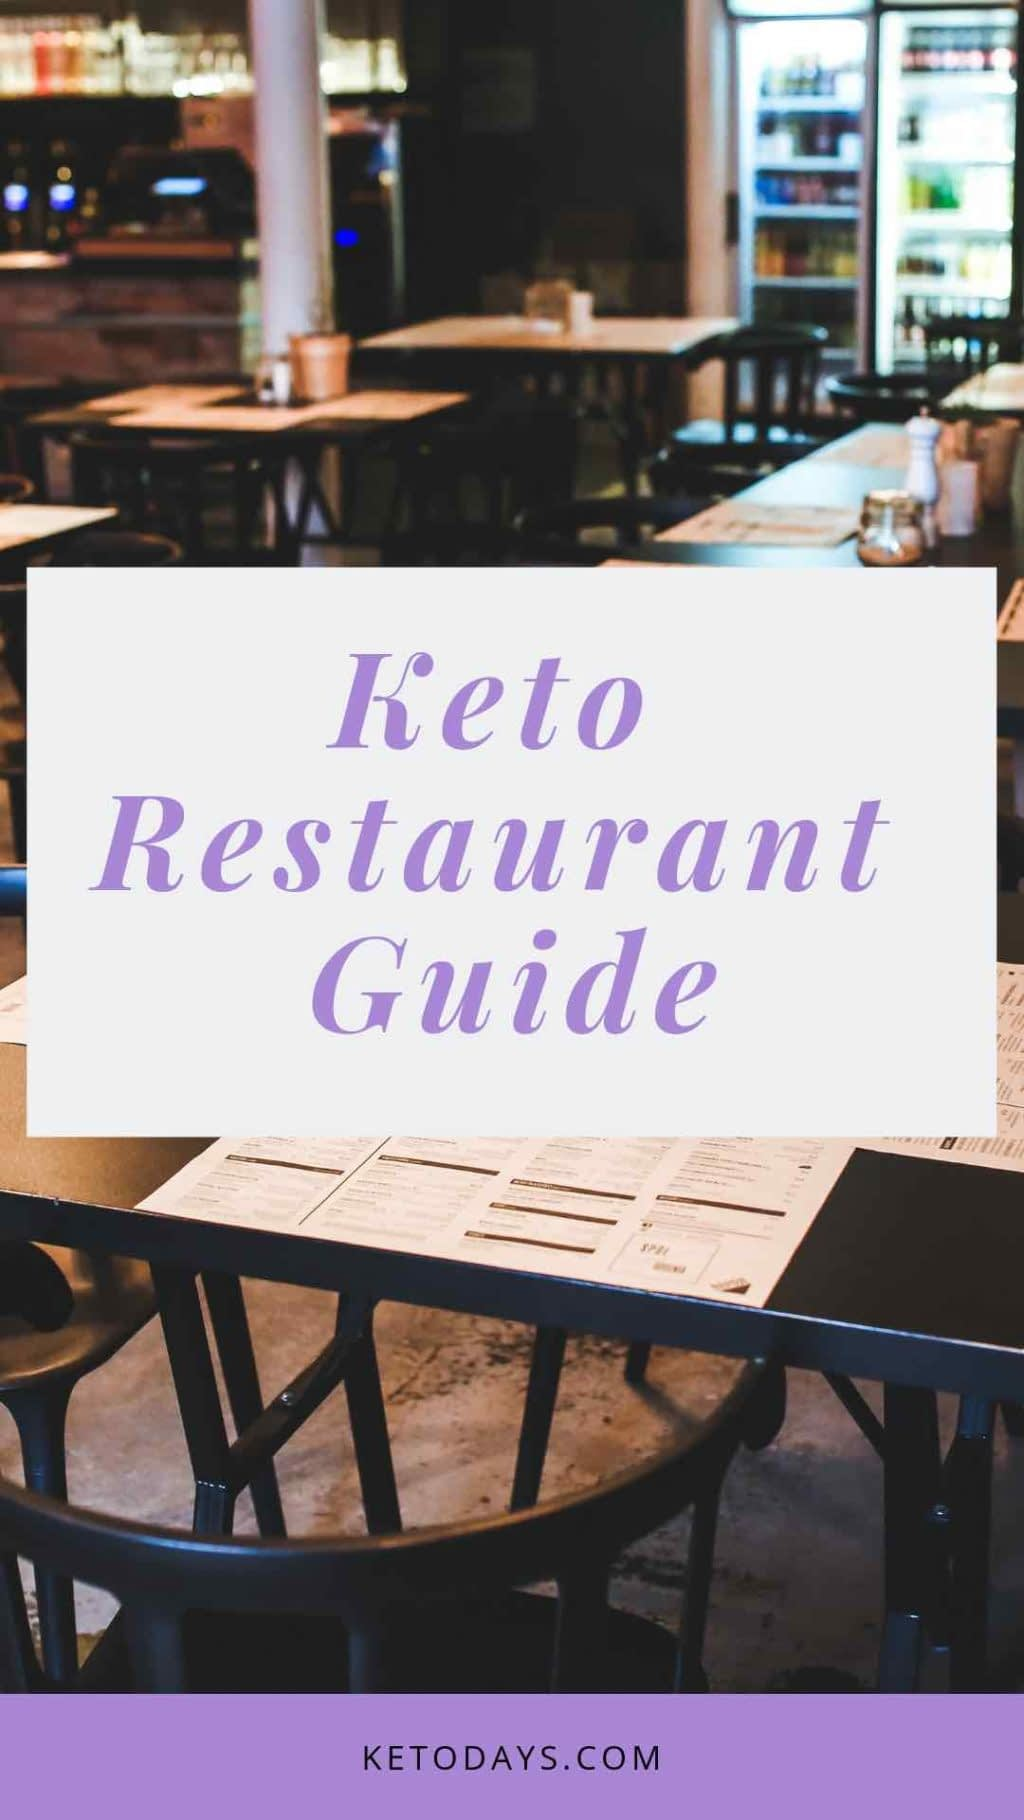 Keto Restaurant Guide is written on the front of a picture of a restaurant and the size of the image is a pin for pinterest